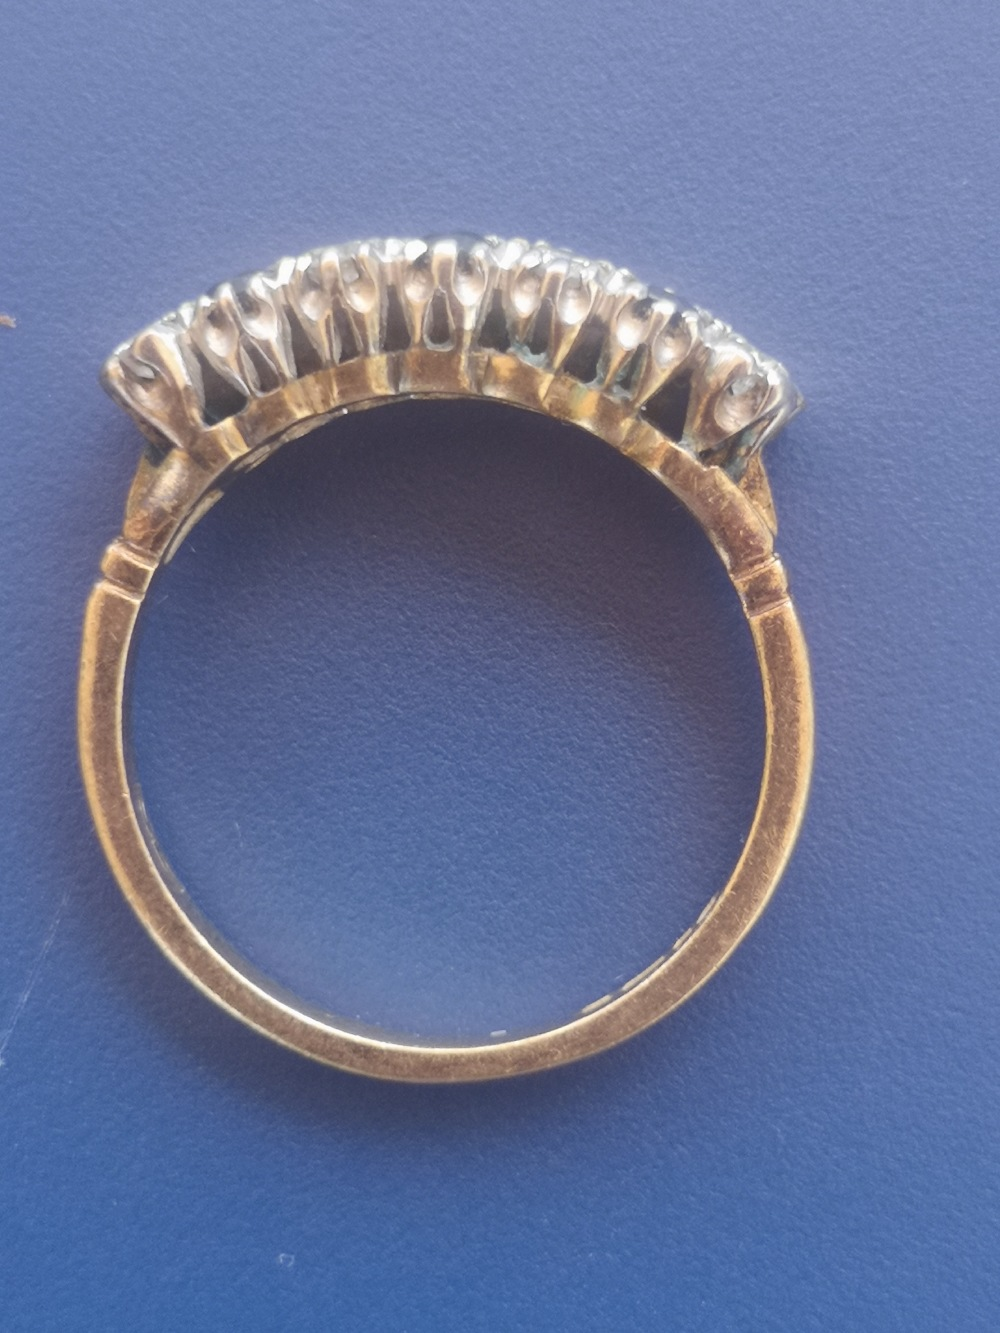 A sapphire & diamond ring set as two rows in 18ct gold. Finger size M/N. - Image 2 of 2